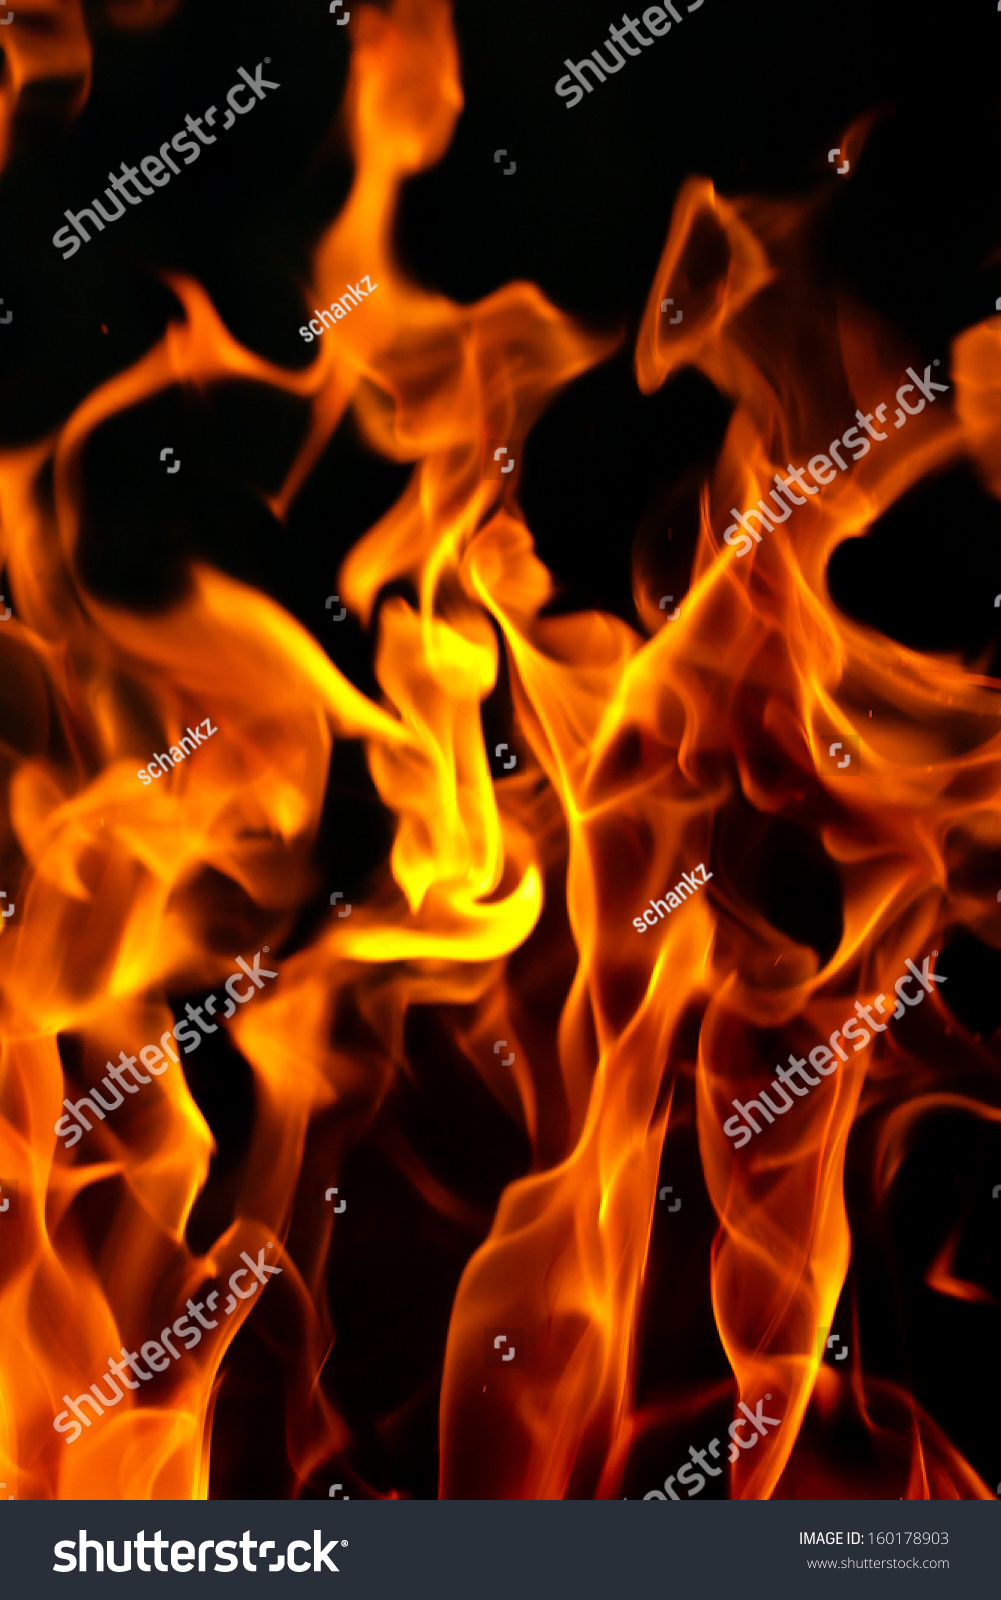 abstract flames fire stock